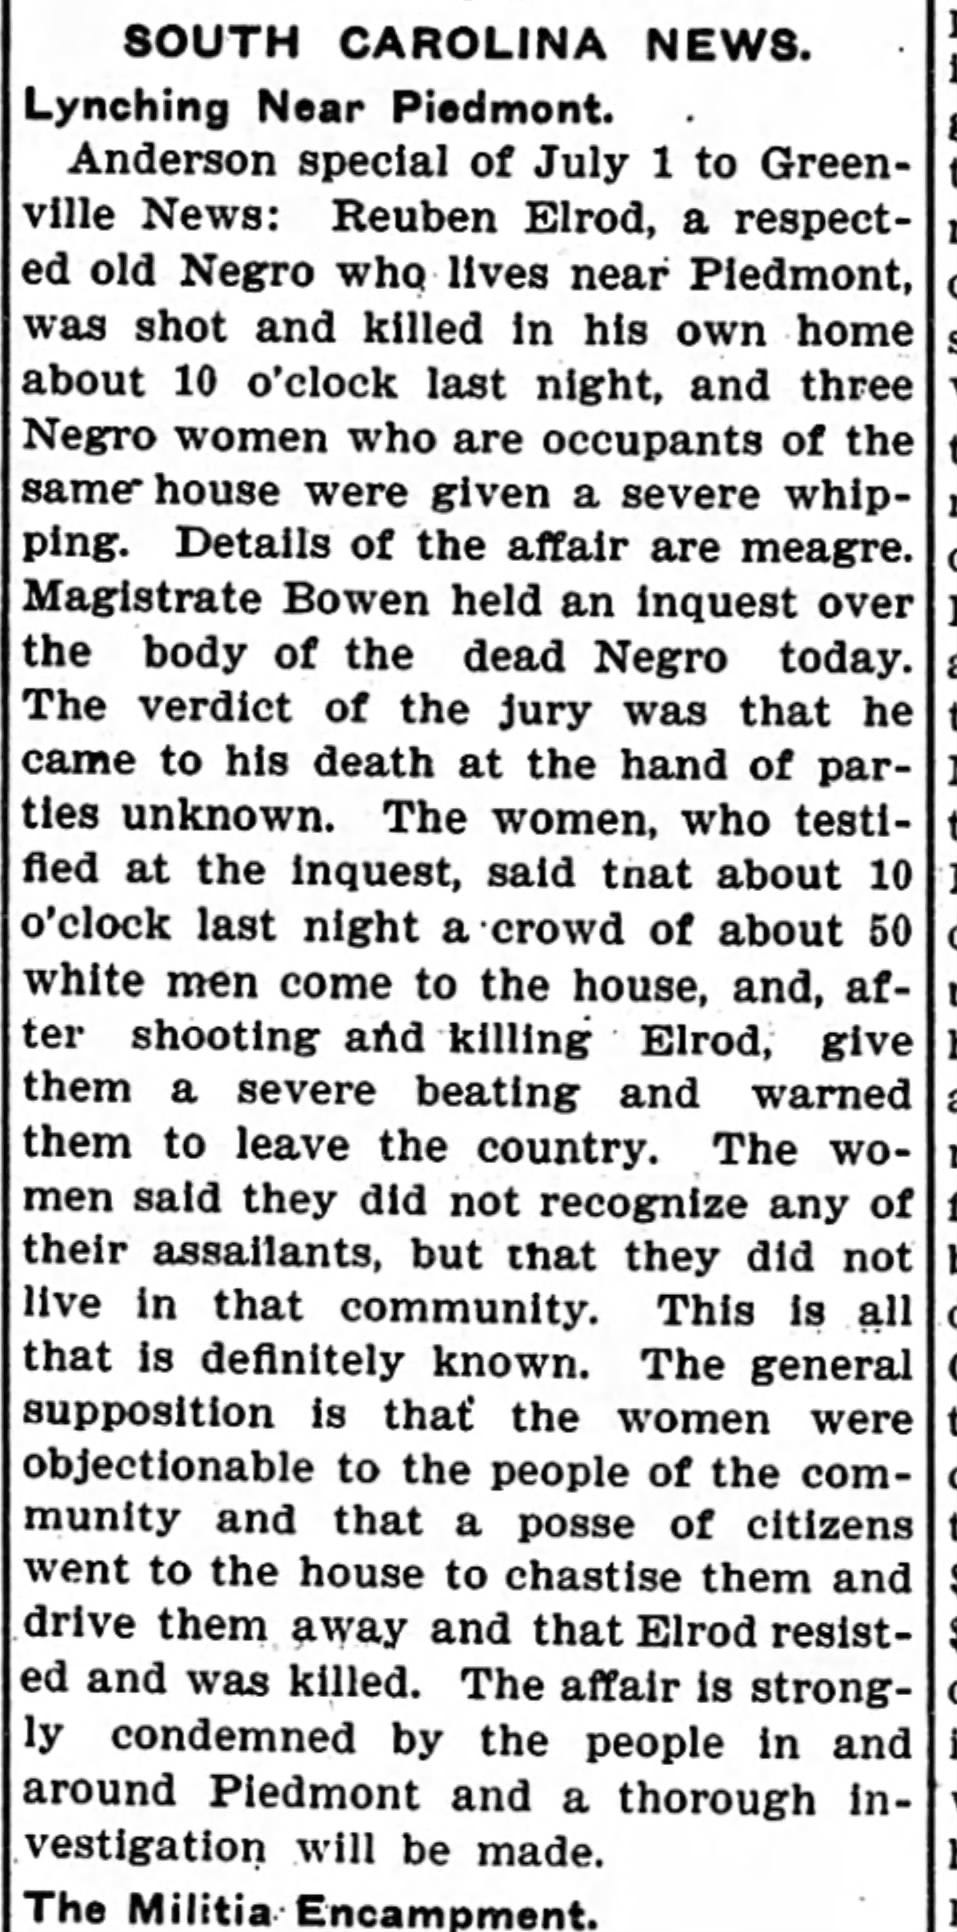 An article on the killing of Reuben Elrod from the July 4, 1903 issue of the Yorkville Enquirer.